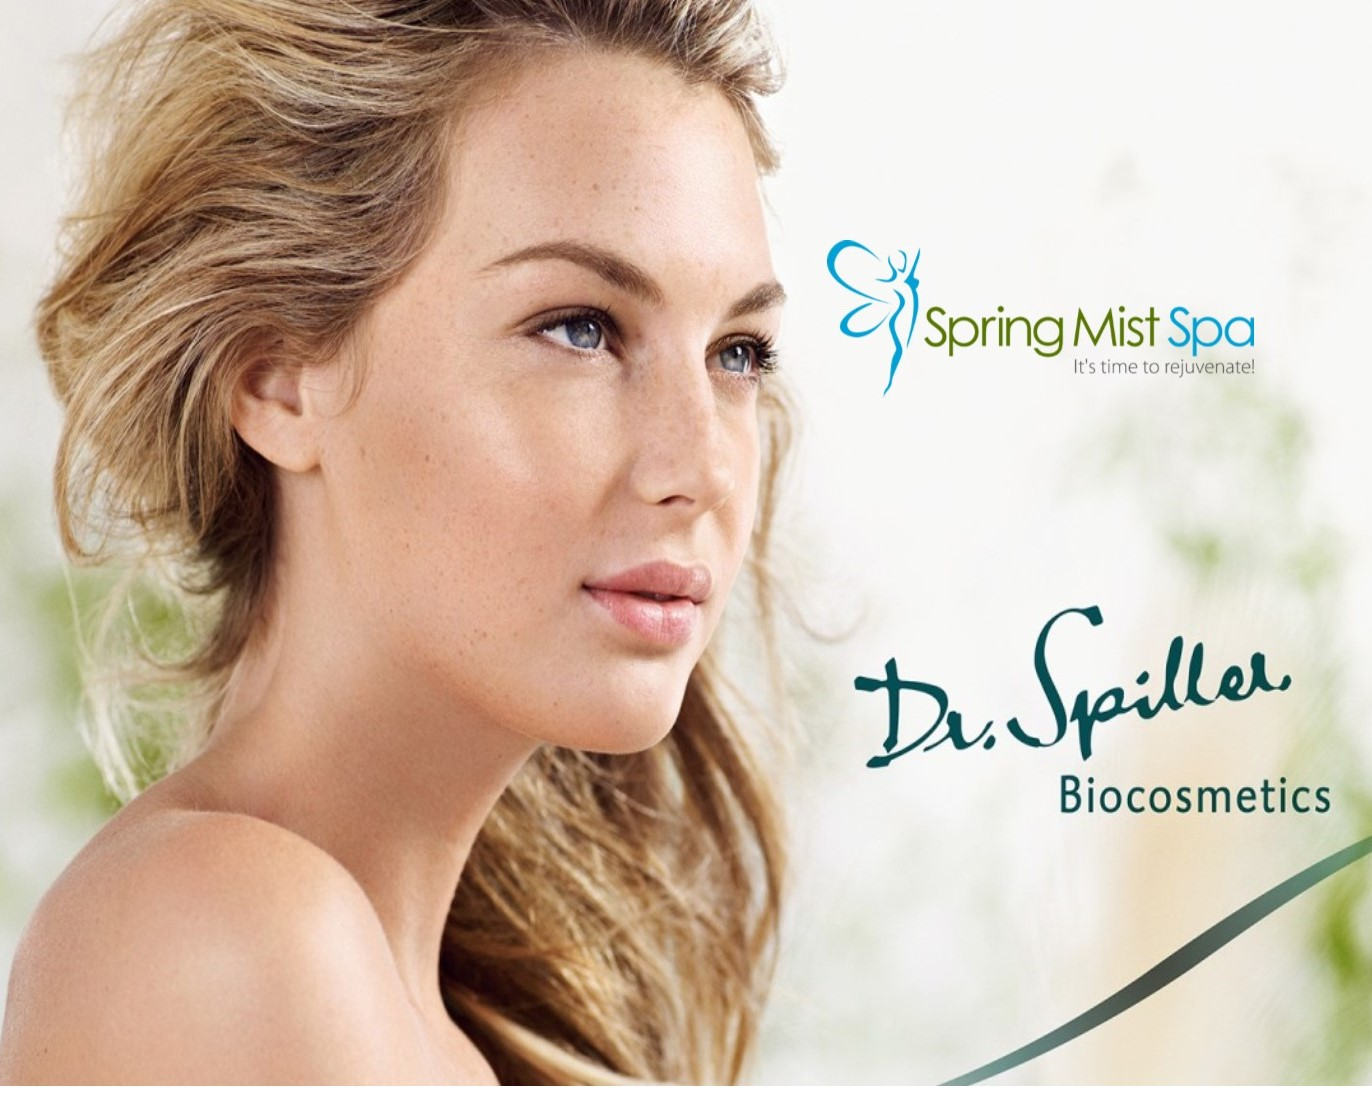 Spring Mist Milton Spa Specials - Look your best this summer with a customized Dr. Spiller Facial -August 2019 Special